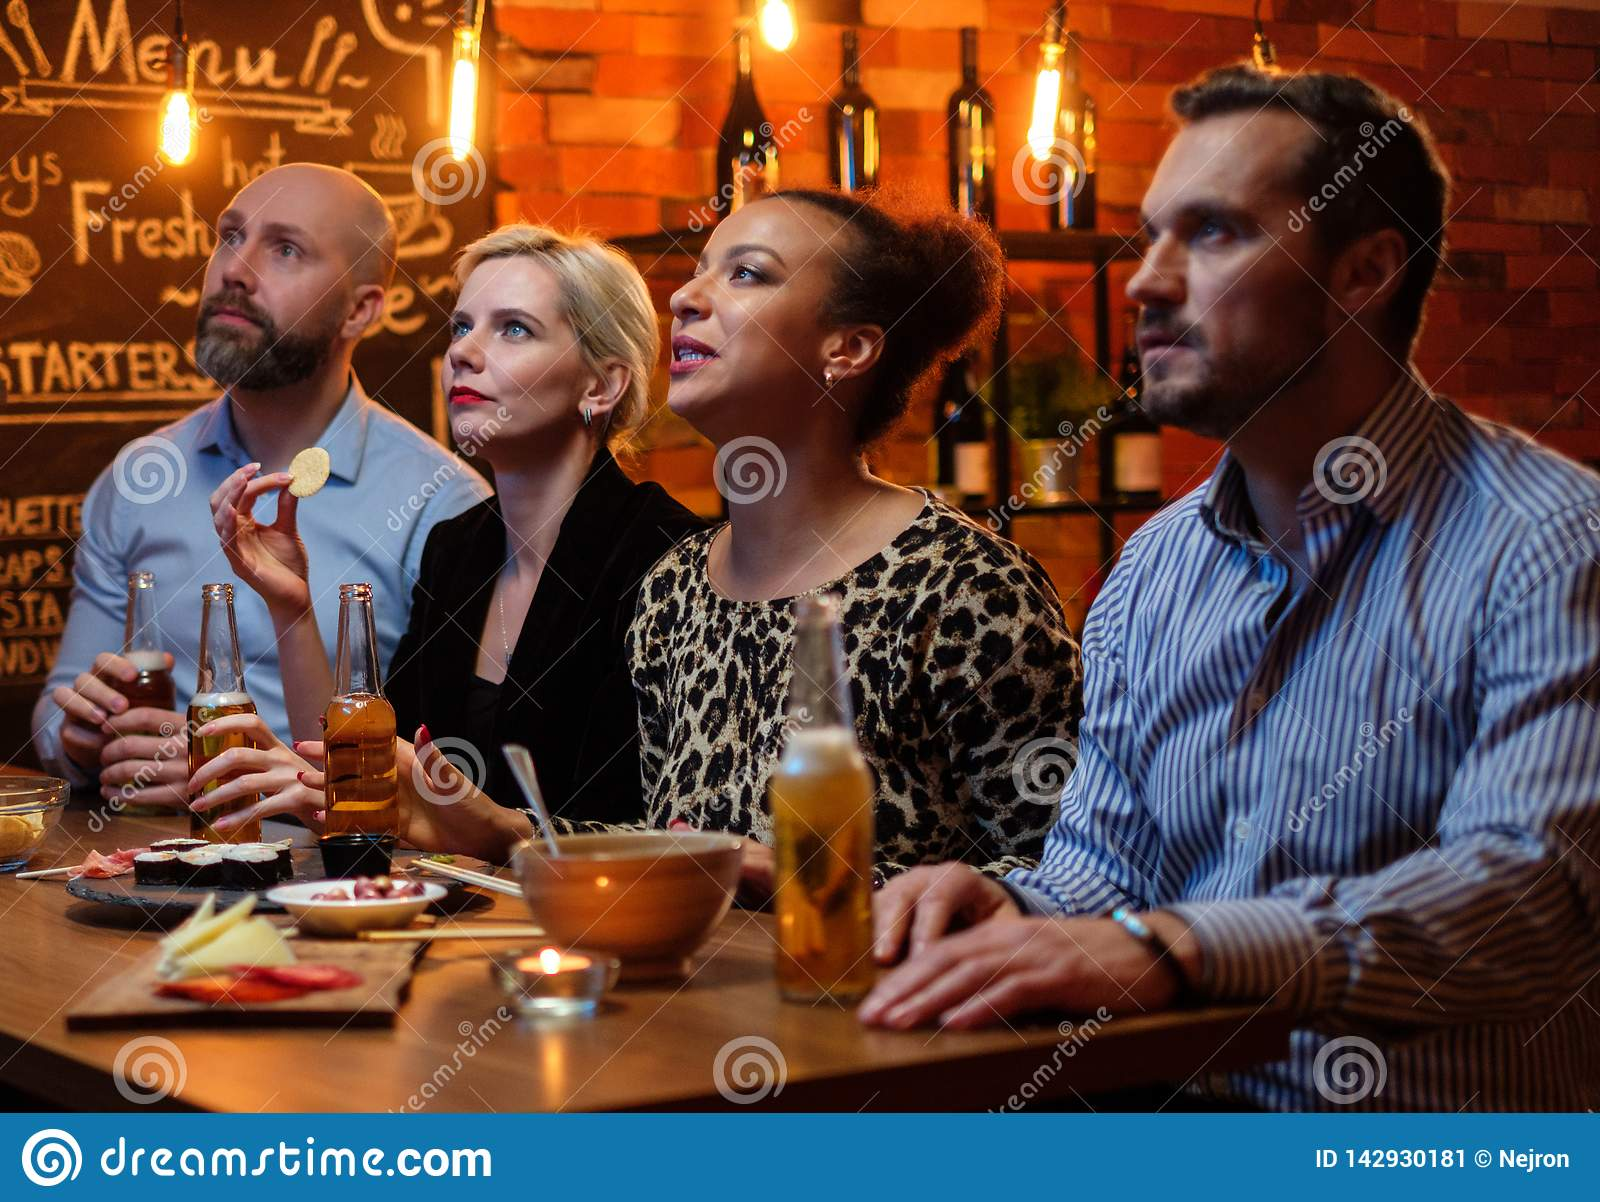 Group Of Friends Watching Tv In A Cafe Behind Bar Counter Stock Image Image Of Restaurant Counter 142930181